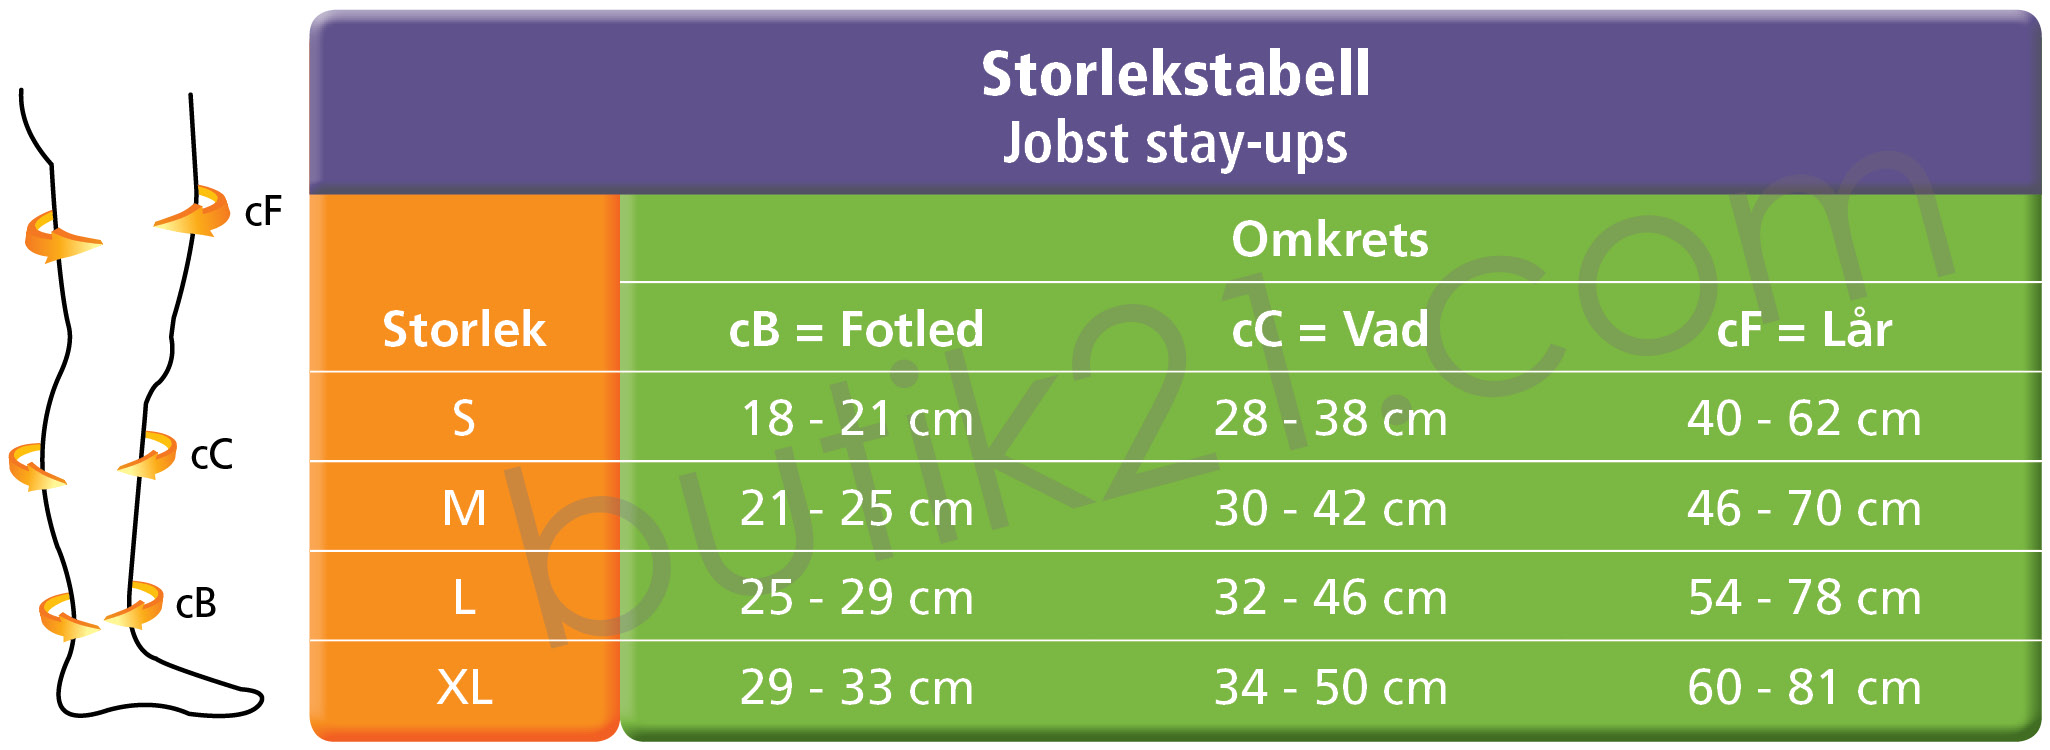 Storlekstabell Jobst Ultra Sheer stay-ups